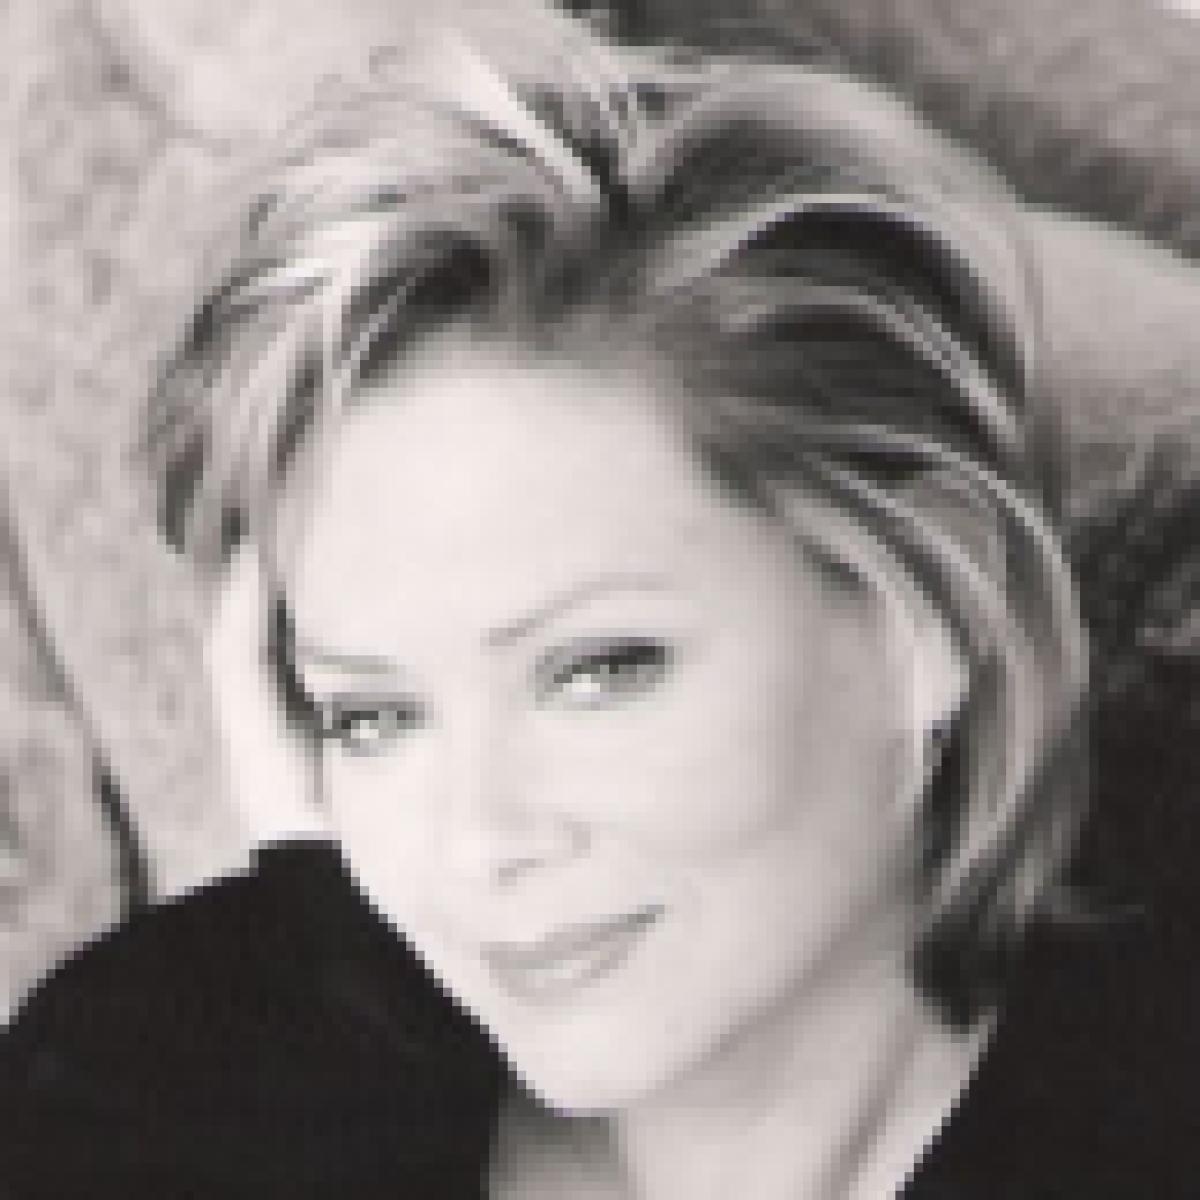 Jean Smart And Richard Gilliland To Star In Love Letters Benefit Theatermania Watch online free richard gilliland movies | putlocker on putlocker 2019 new site in hd without downloading or registration. jean smart and richard gilliland to